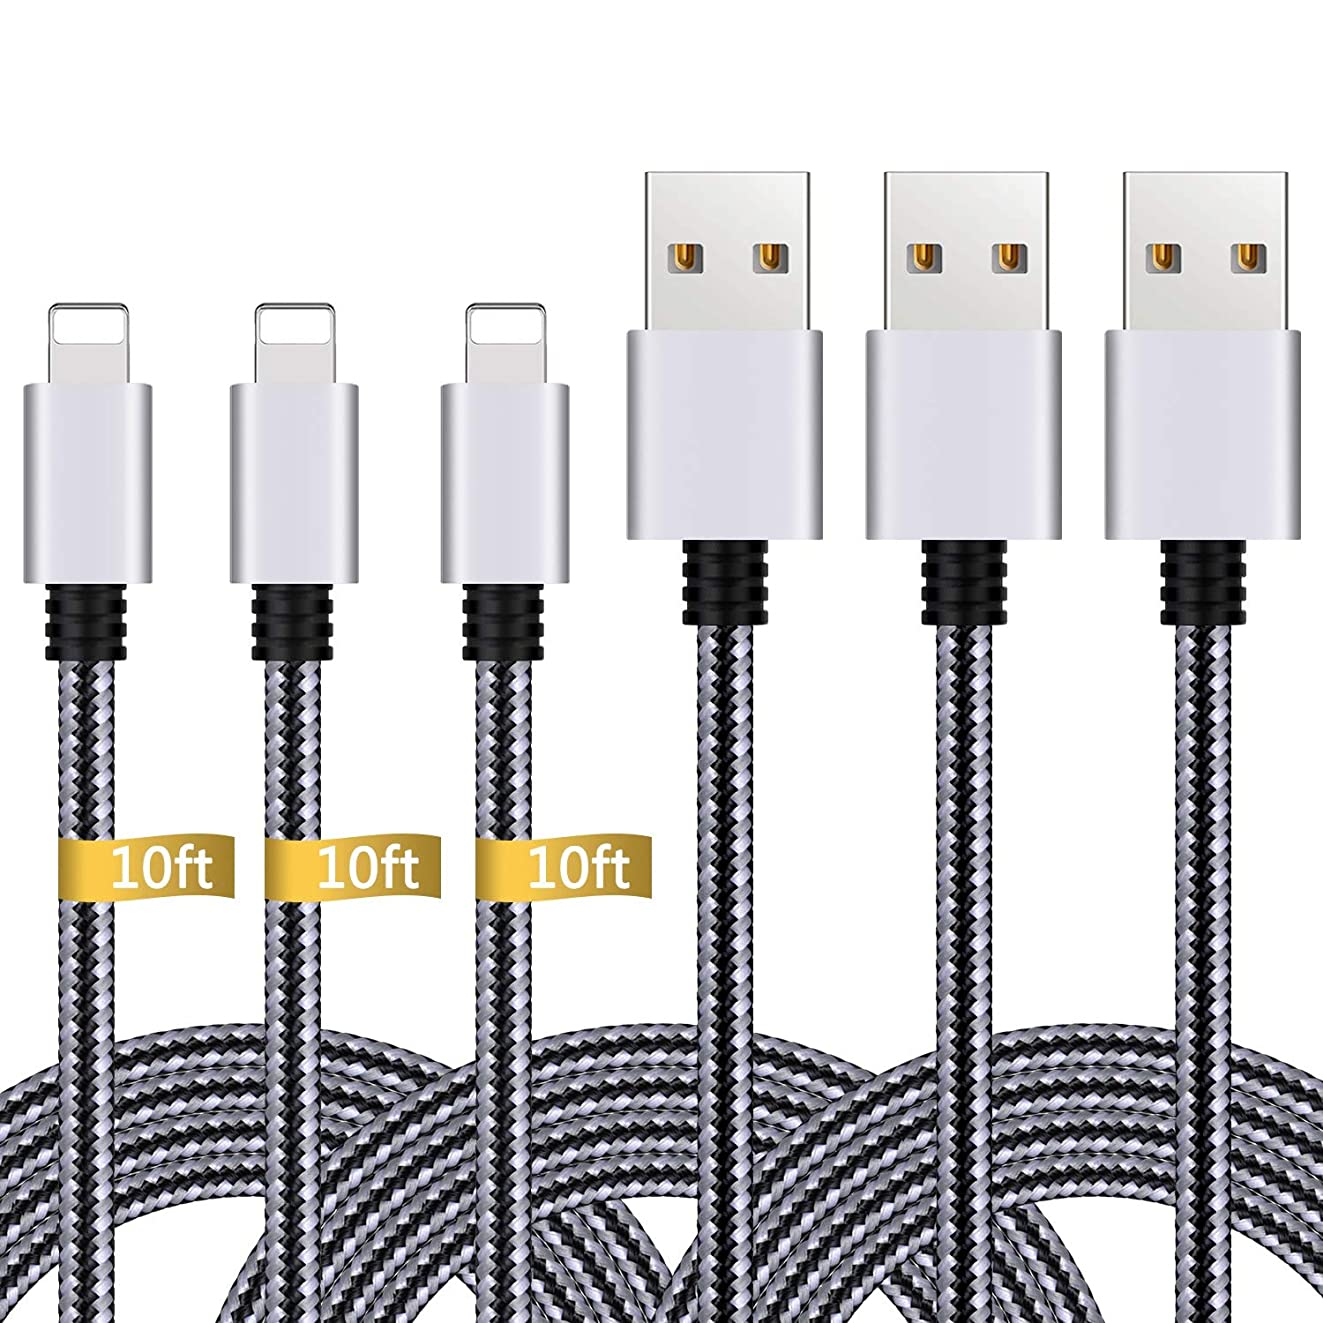 iPhone Charger,3Pack 10FT Lightning to USB Cable Nylon?Braided Charging Cord Compatible with iPhone X 8 Plus 8 7 Plus 7 6 6S 6 Plus 5S SE iPod iPad Mini Air Pro (Black Gray)